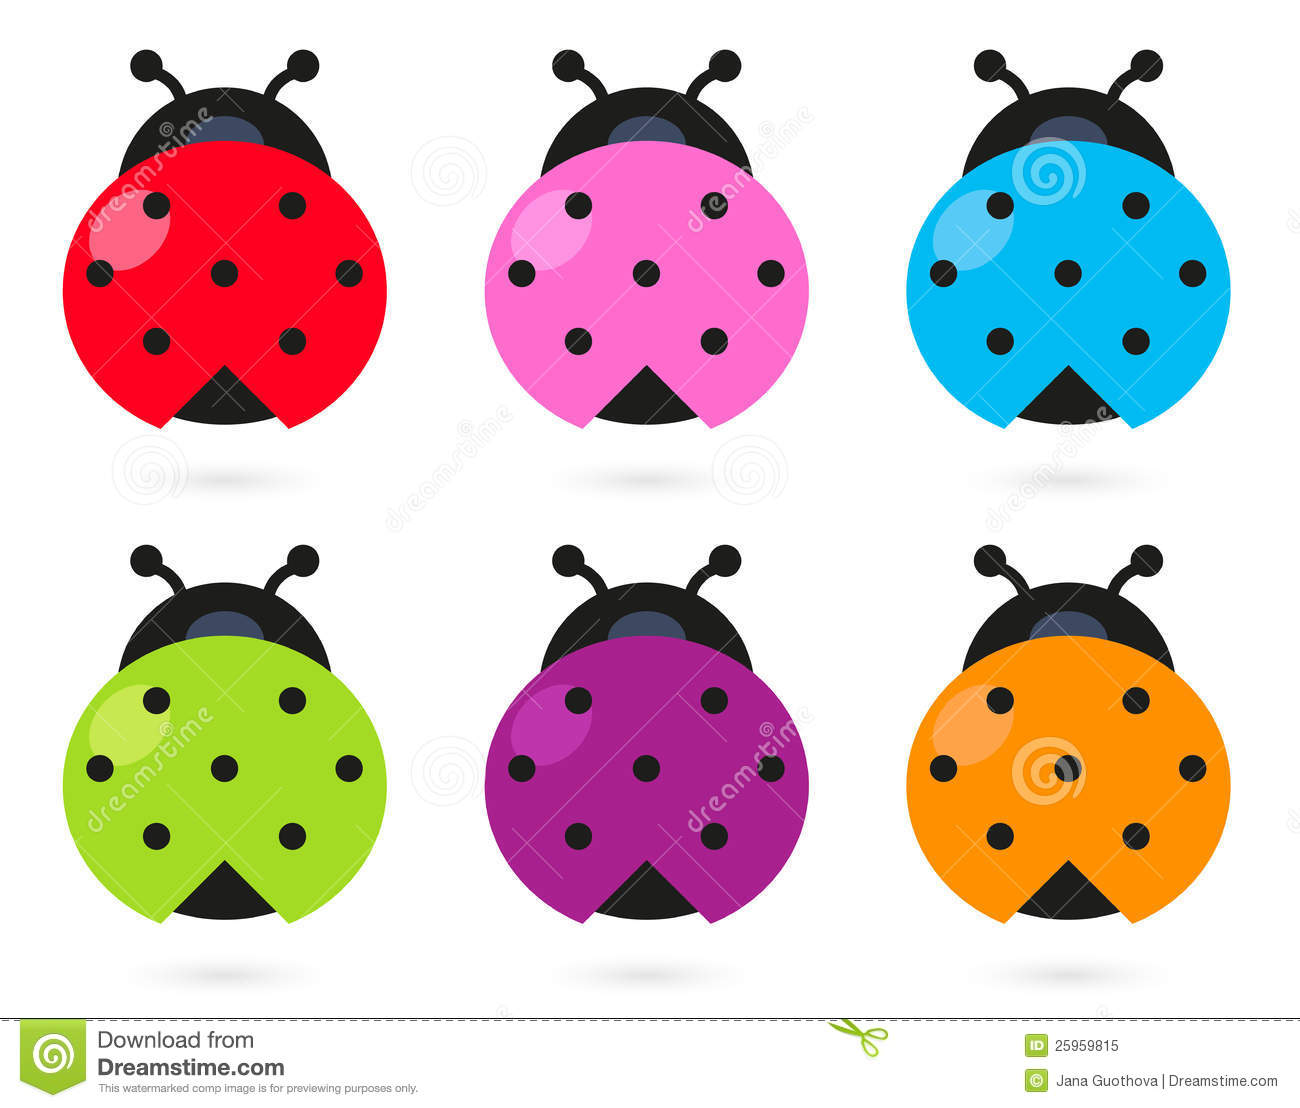 Cute Ladybug Clipart   Free download on ClipArtMag